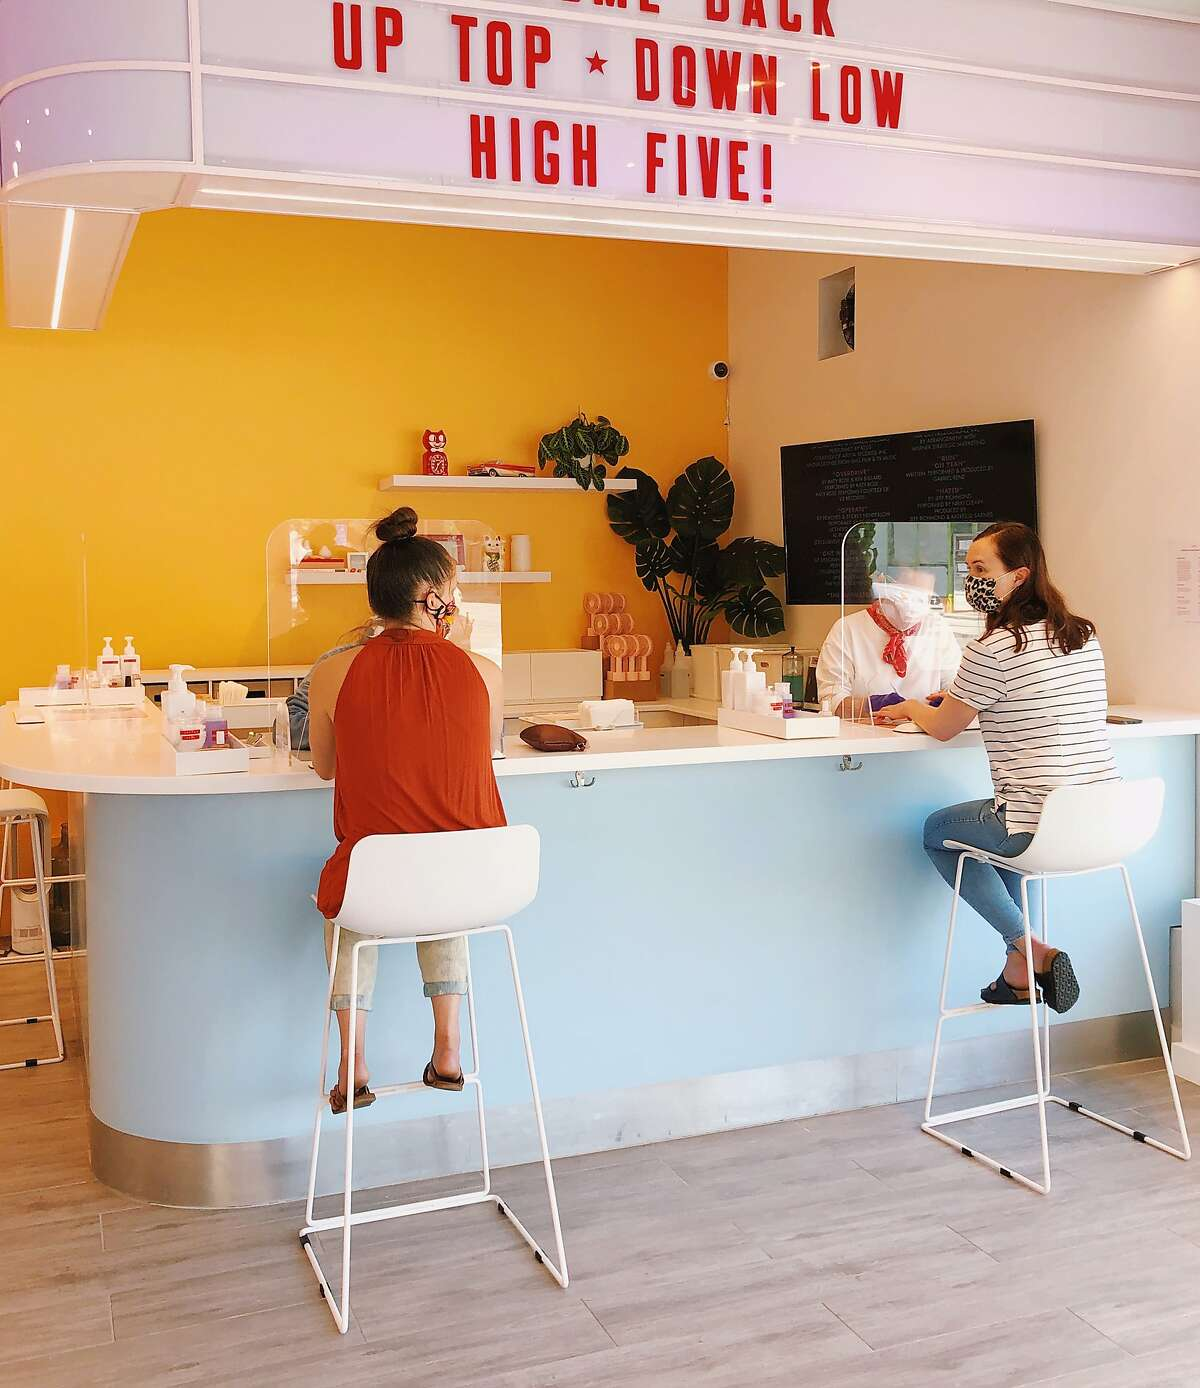 COVID-friendly manicure stations with plexiglass barriers inside High Five nail salon in San Francisco.